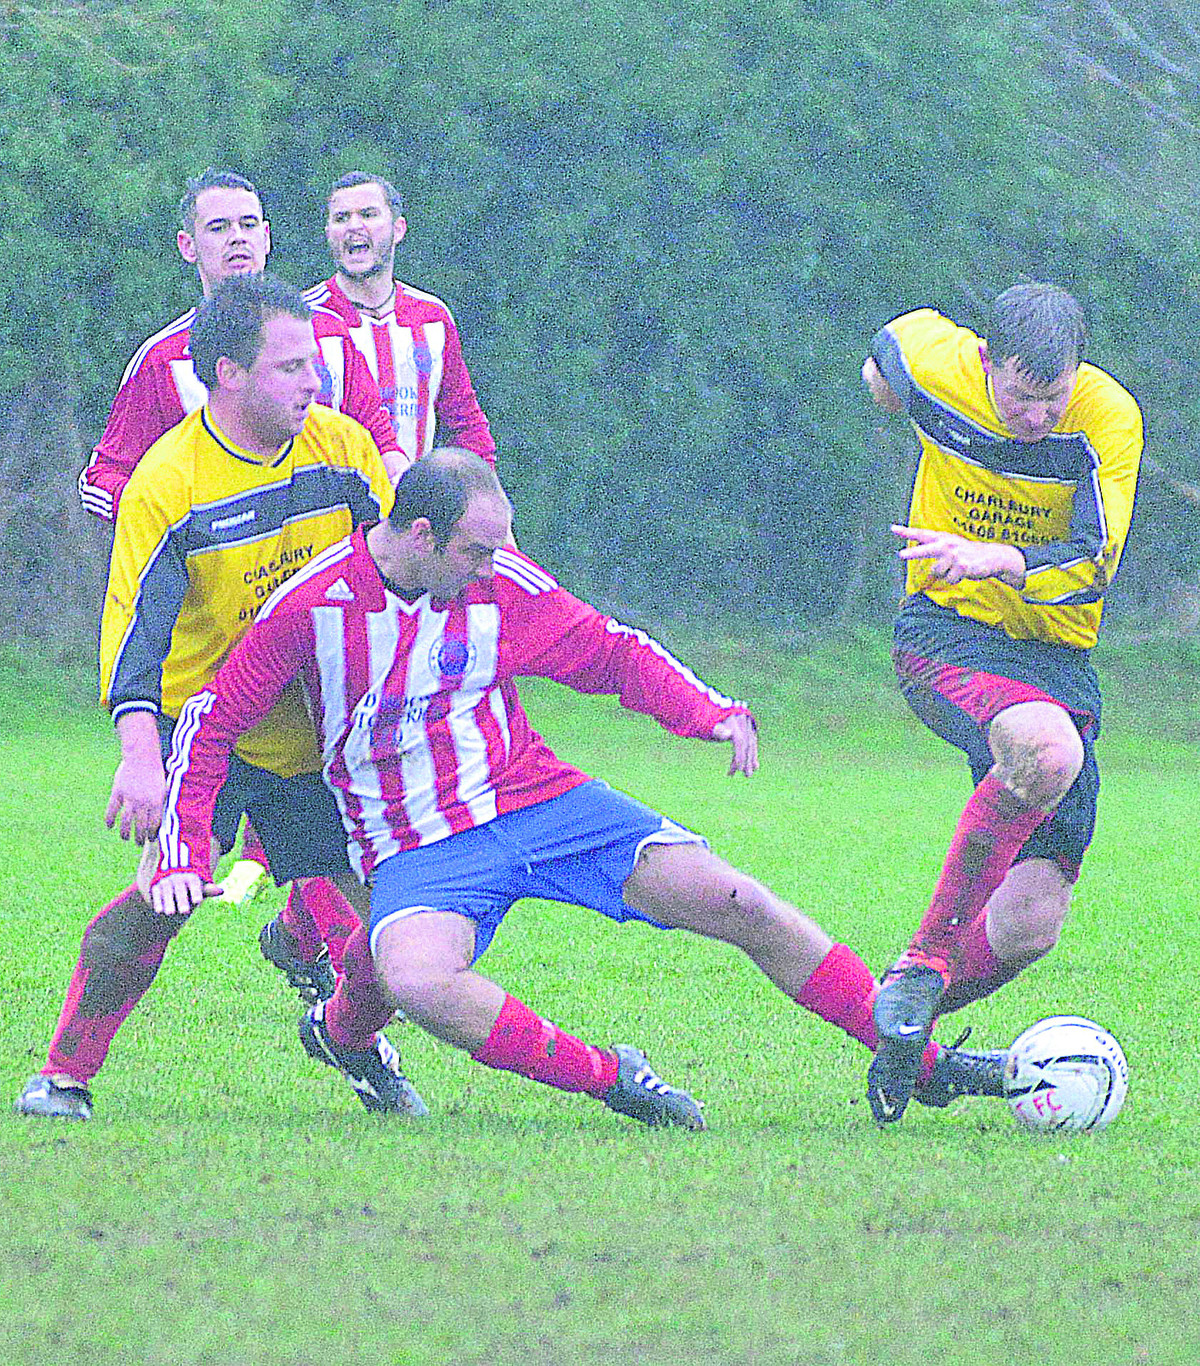 Charlbury's Steve Fitzgerald (right) wins this battle with Ben Waldron during their 2-0 home win against Aston in the Premier Division